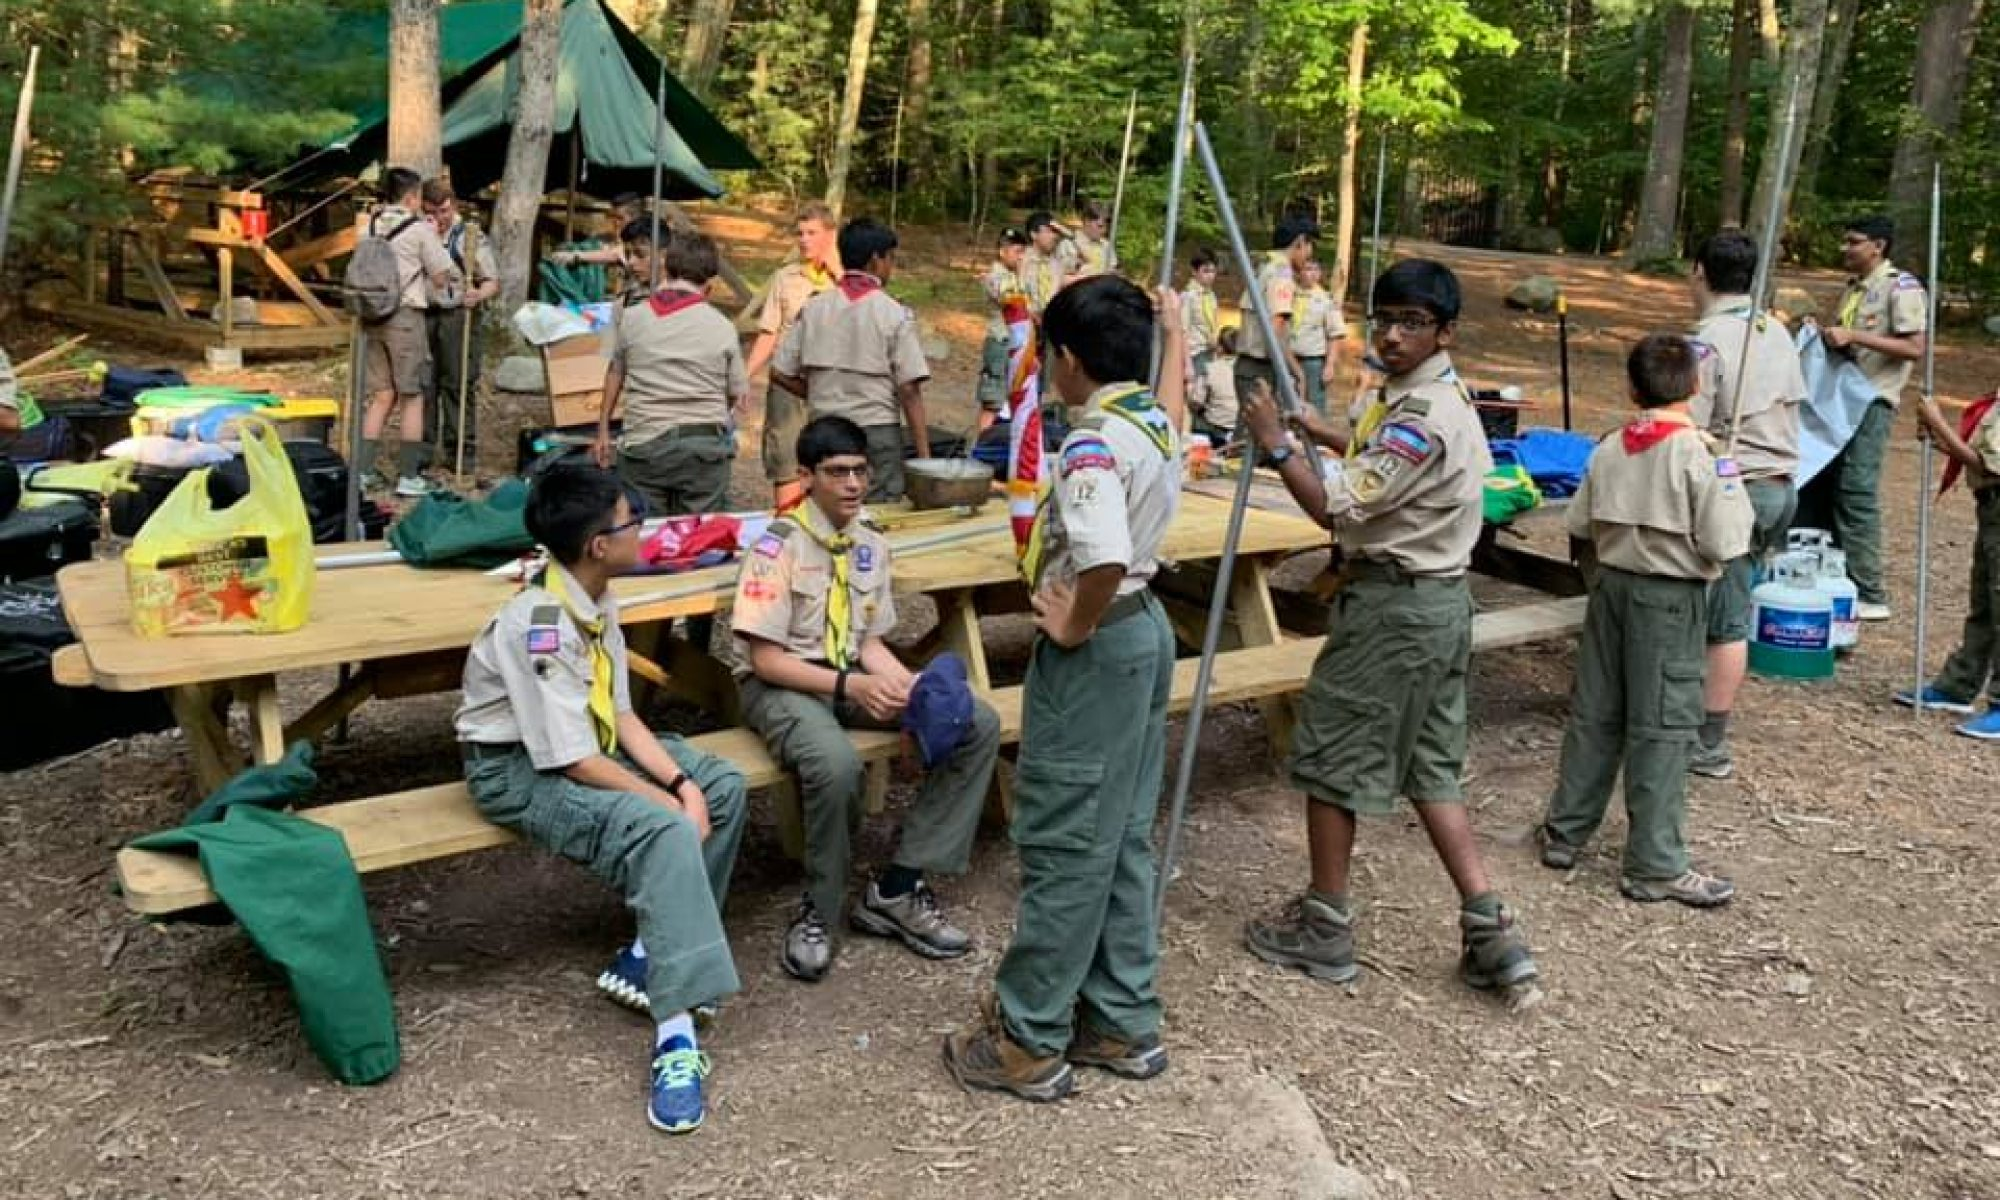 BSA Troop 12 -- Livingston NJ